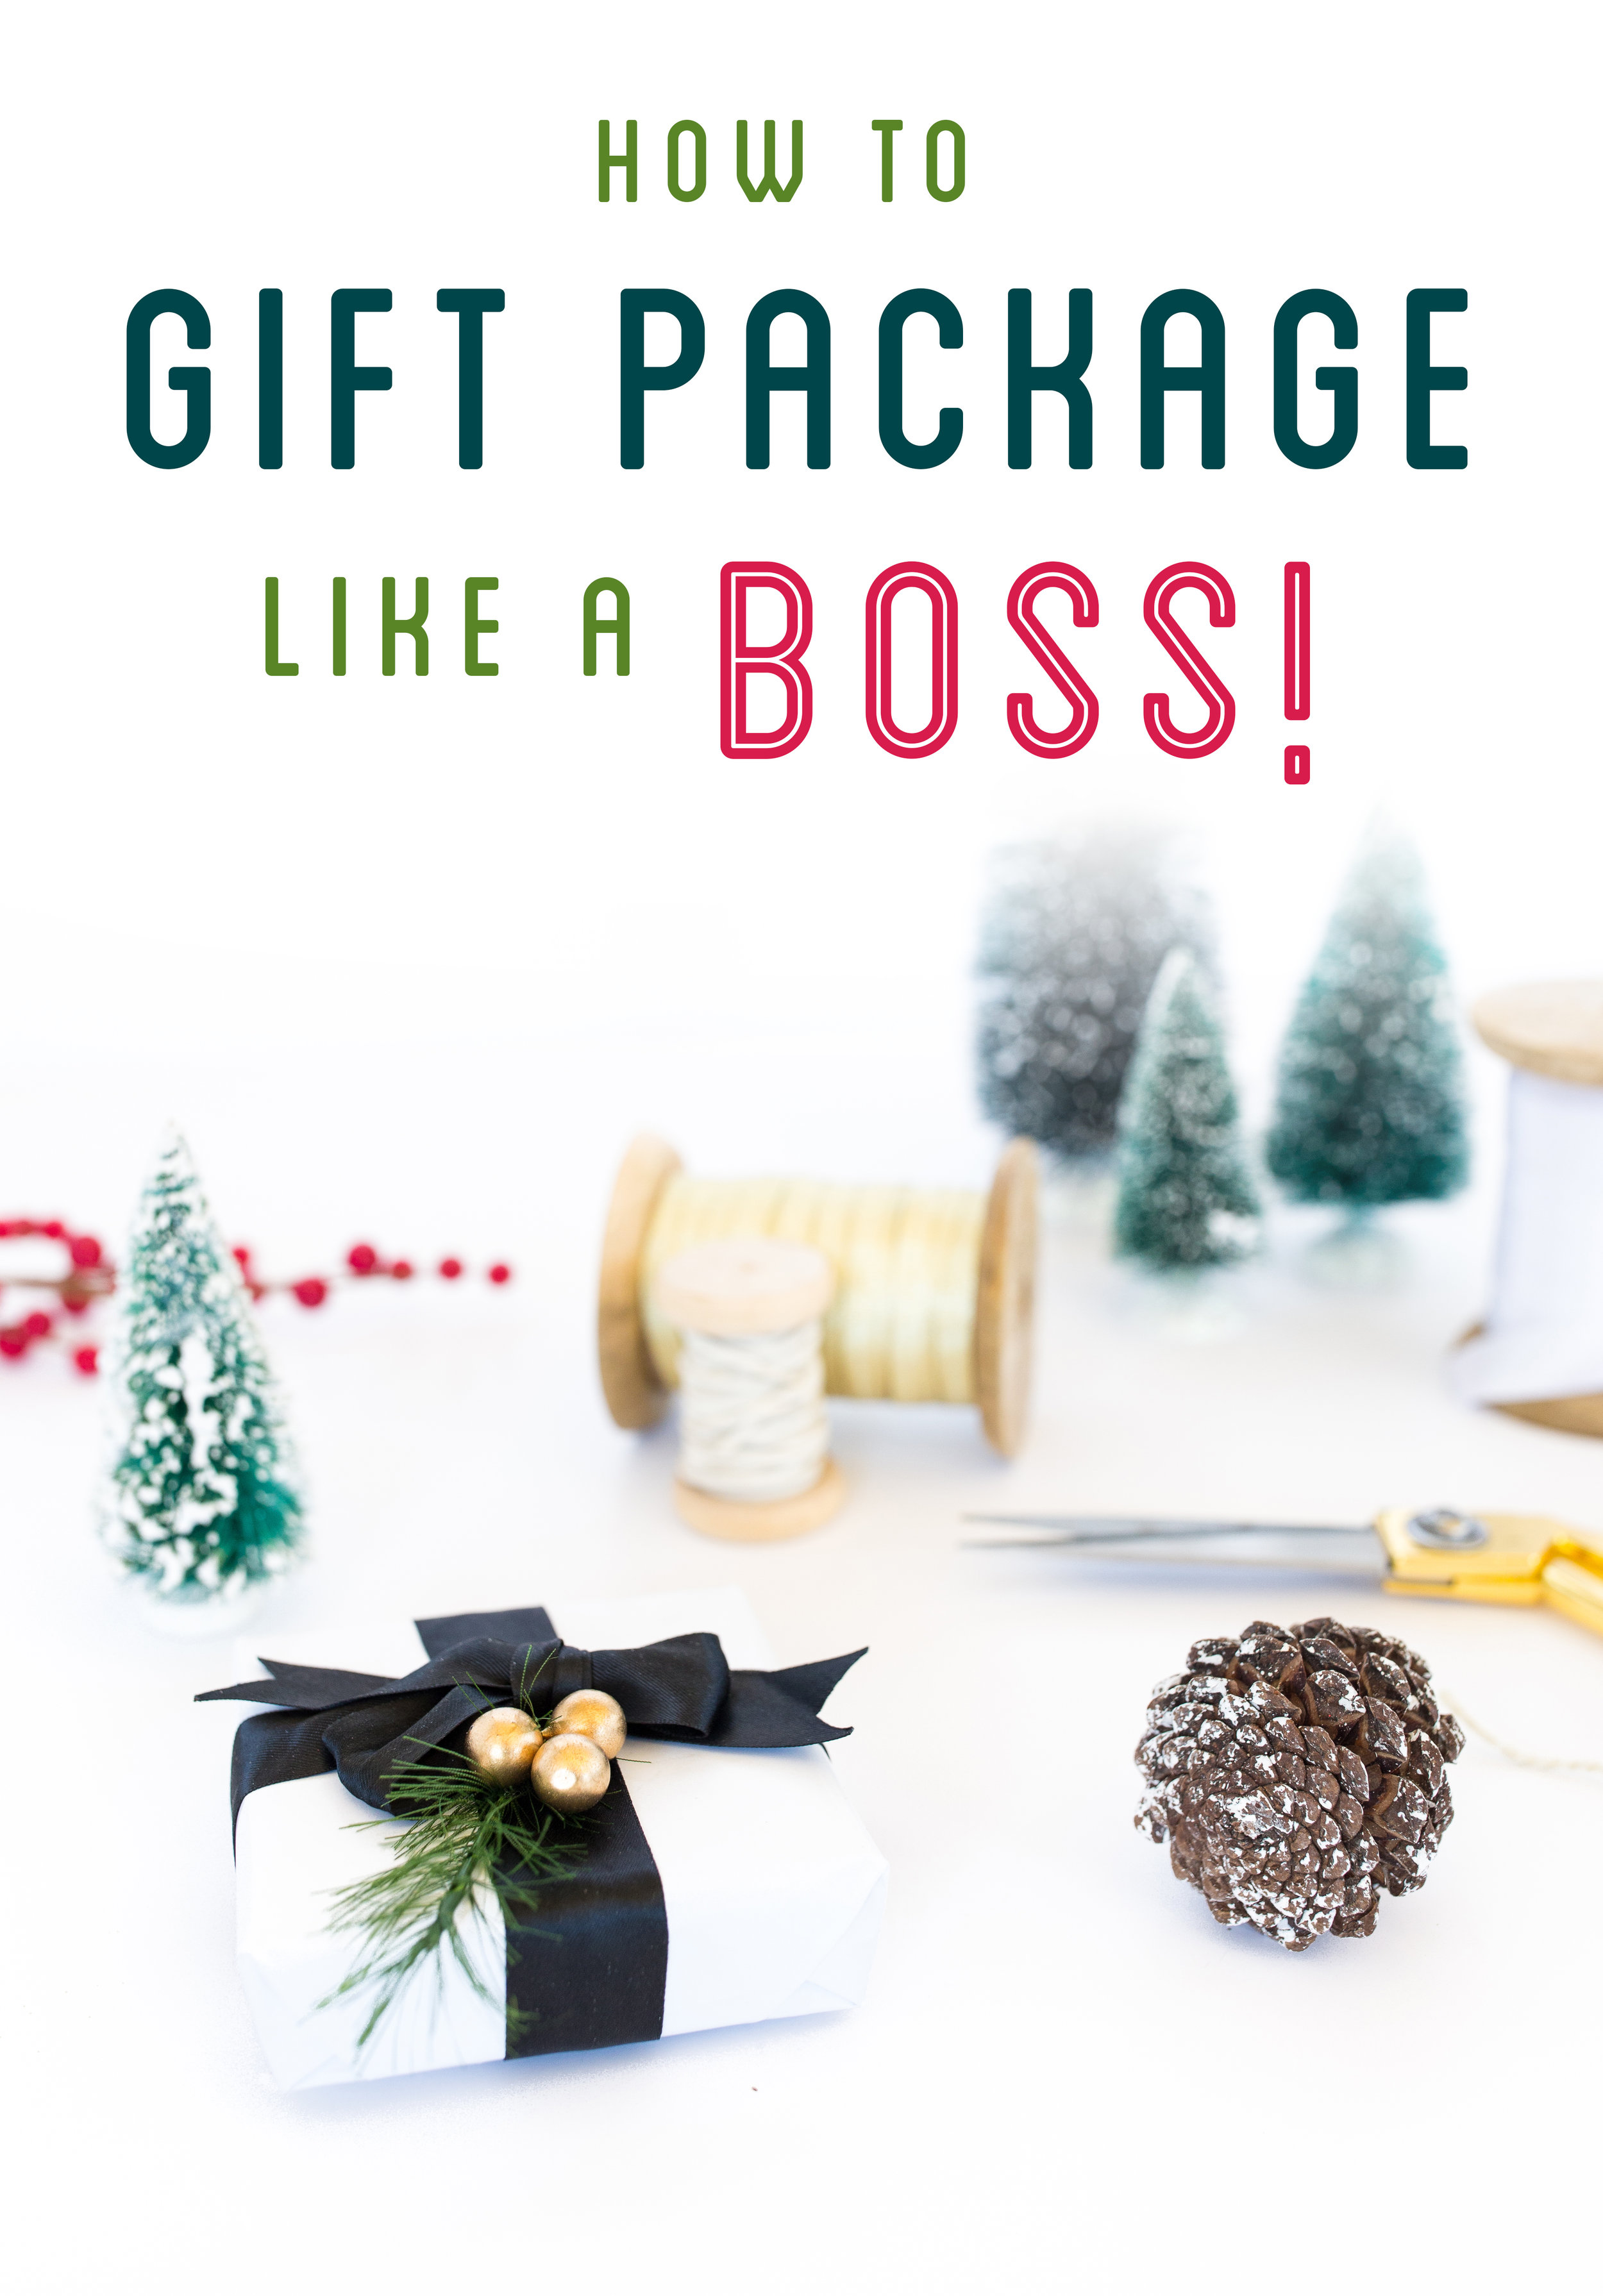 Gift Packaging Tips